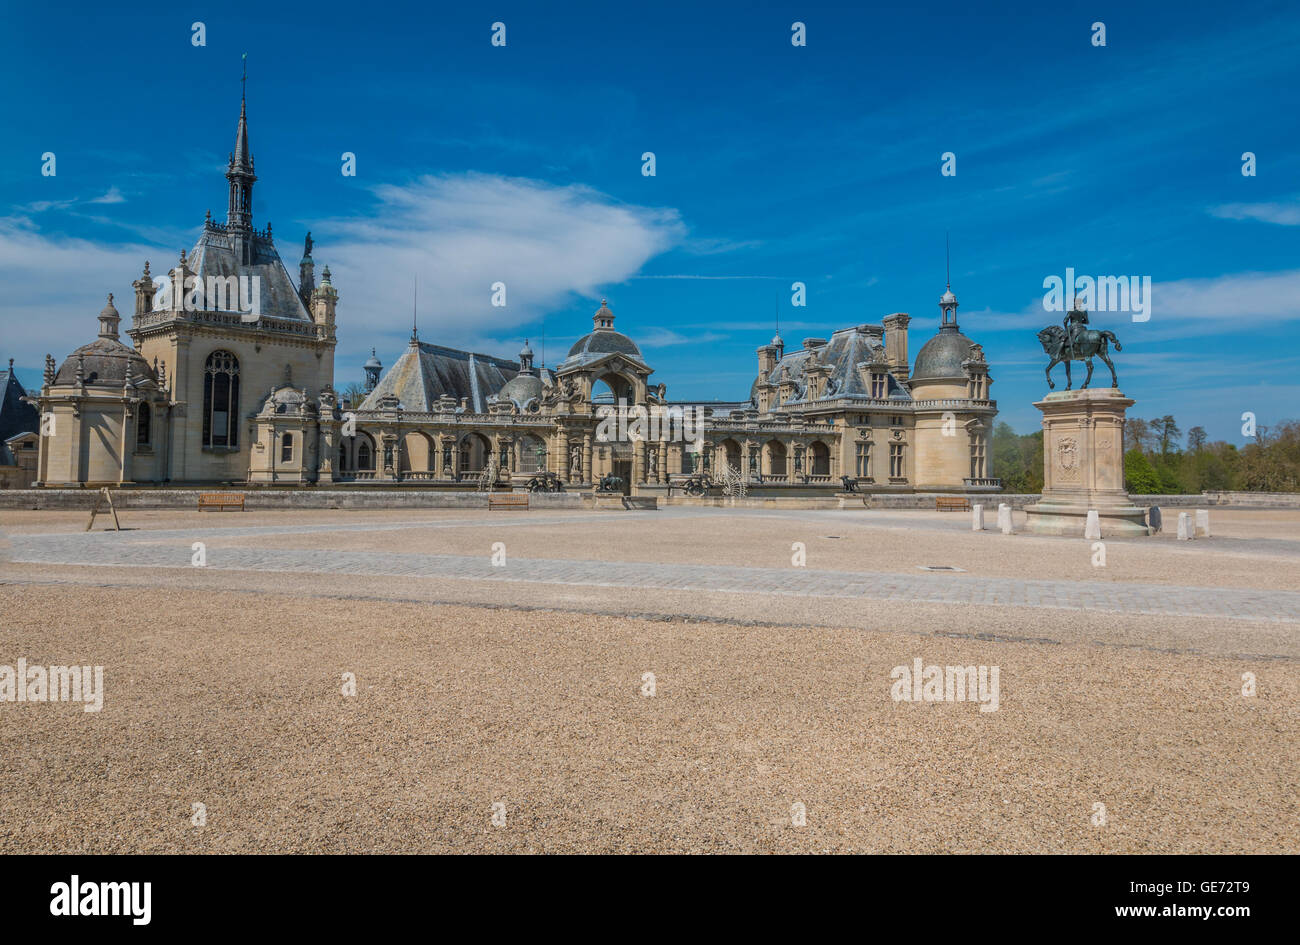 Chateau Chantilly in France - Stock Image